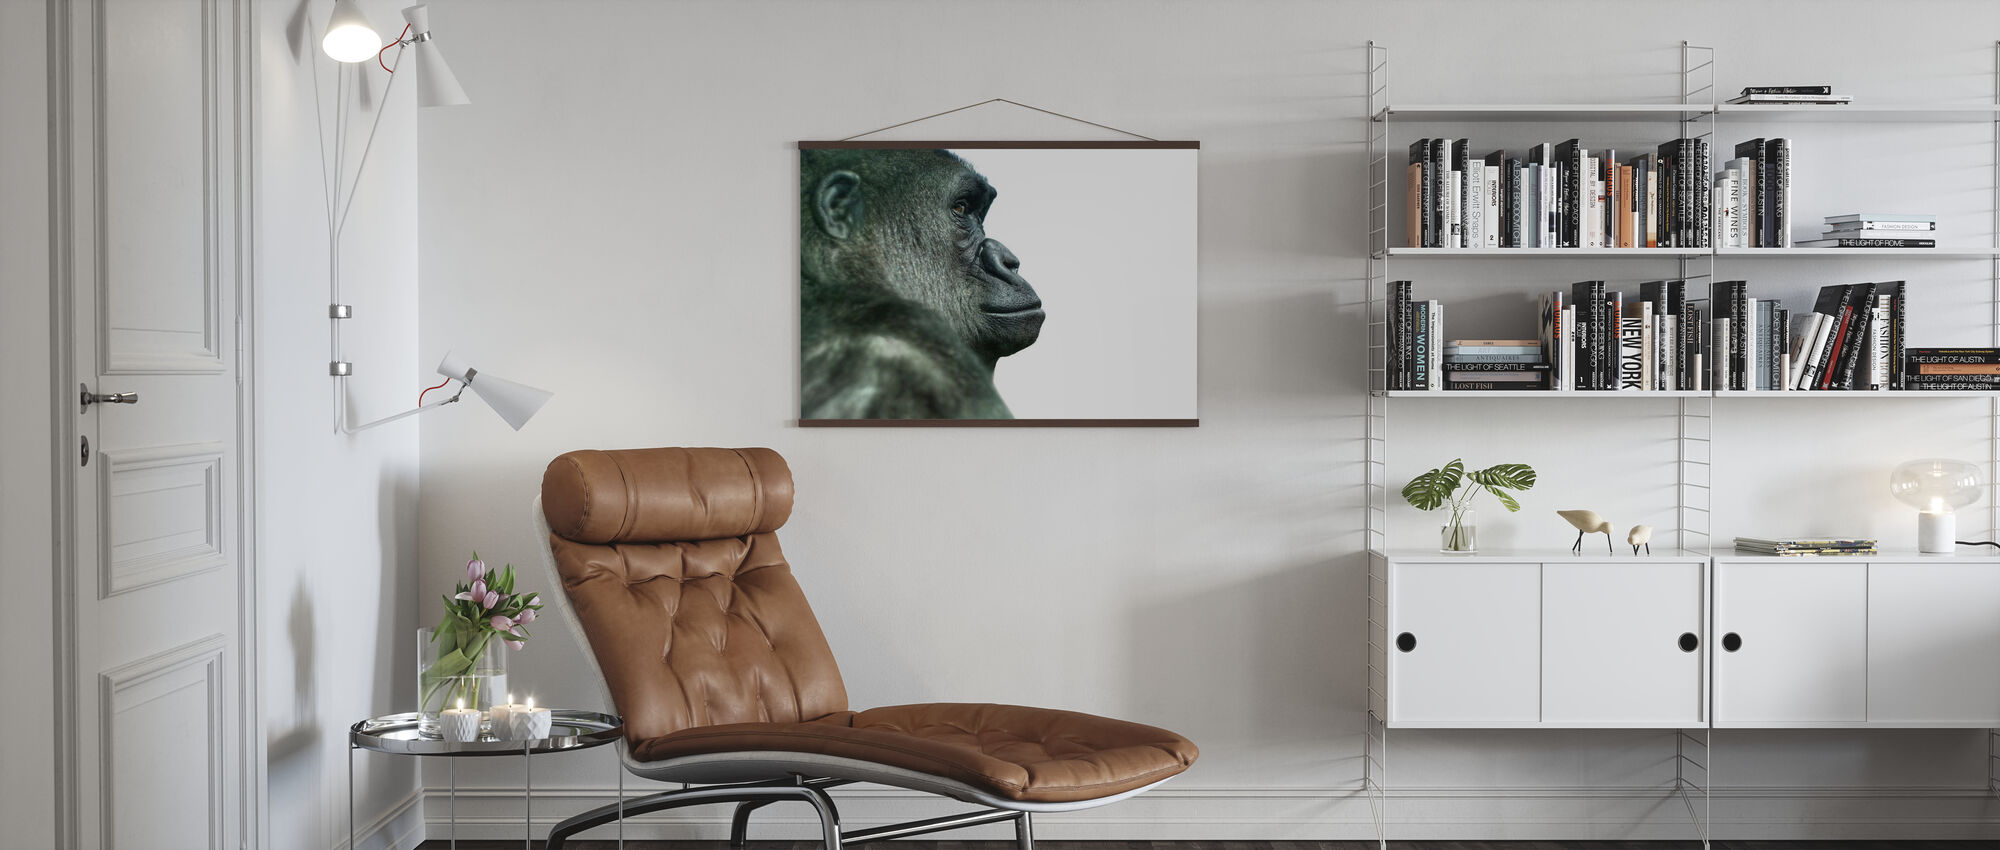 Gorilla - Poster - Living Room